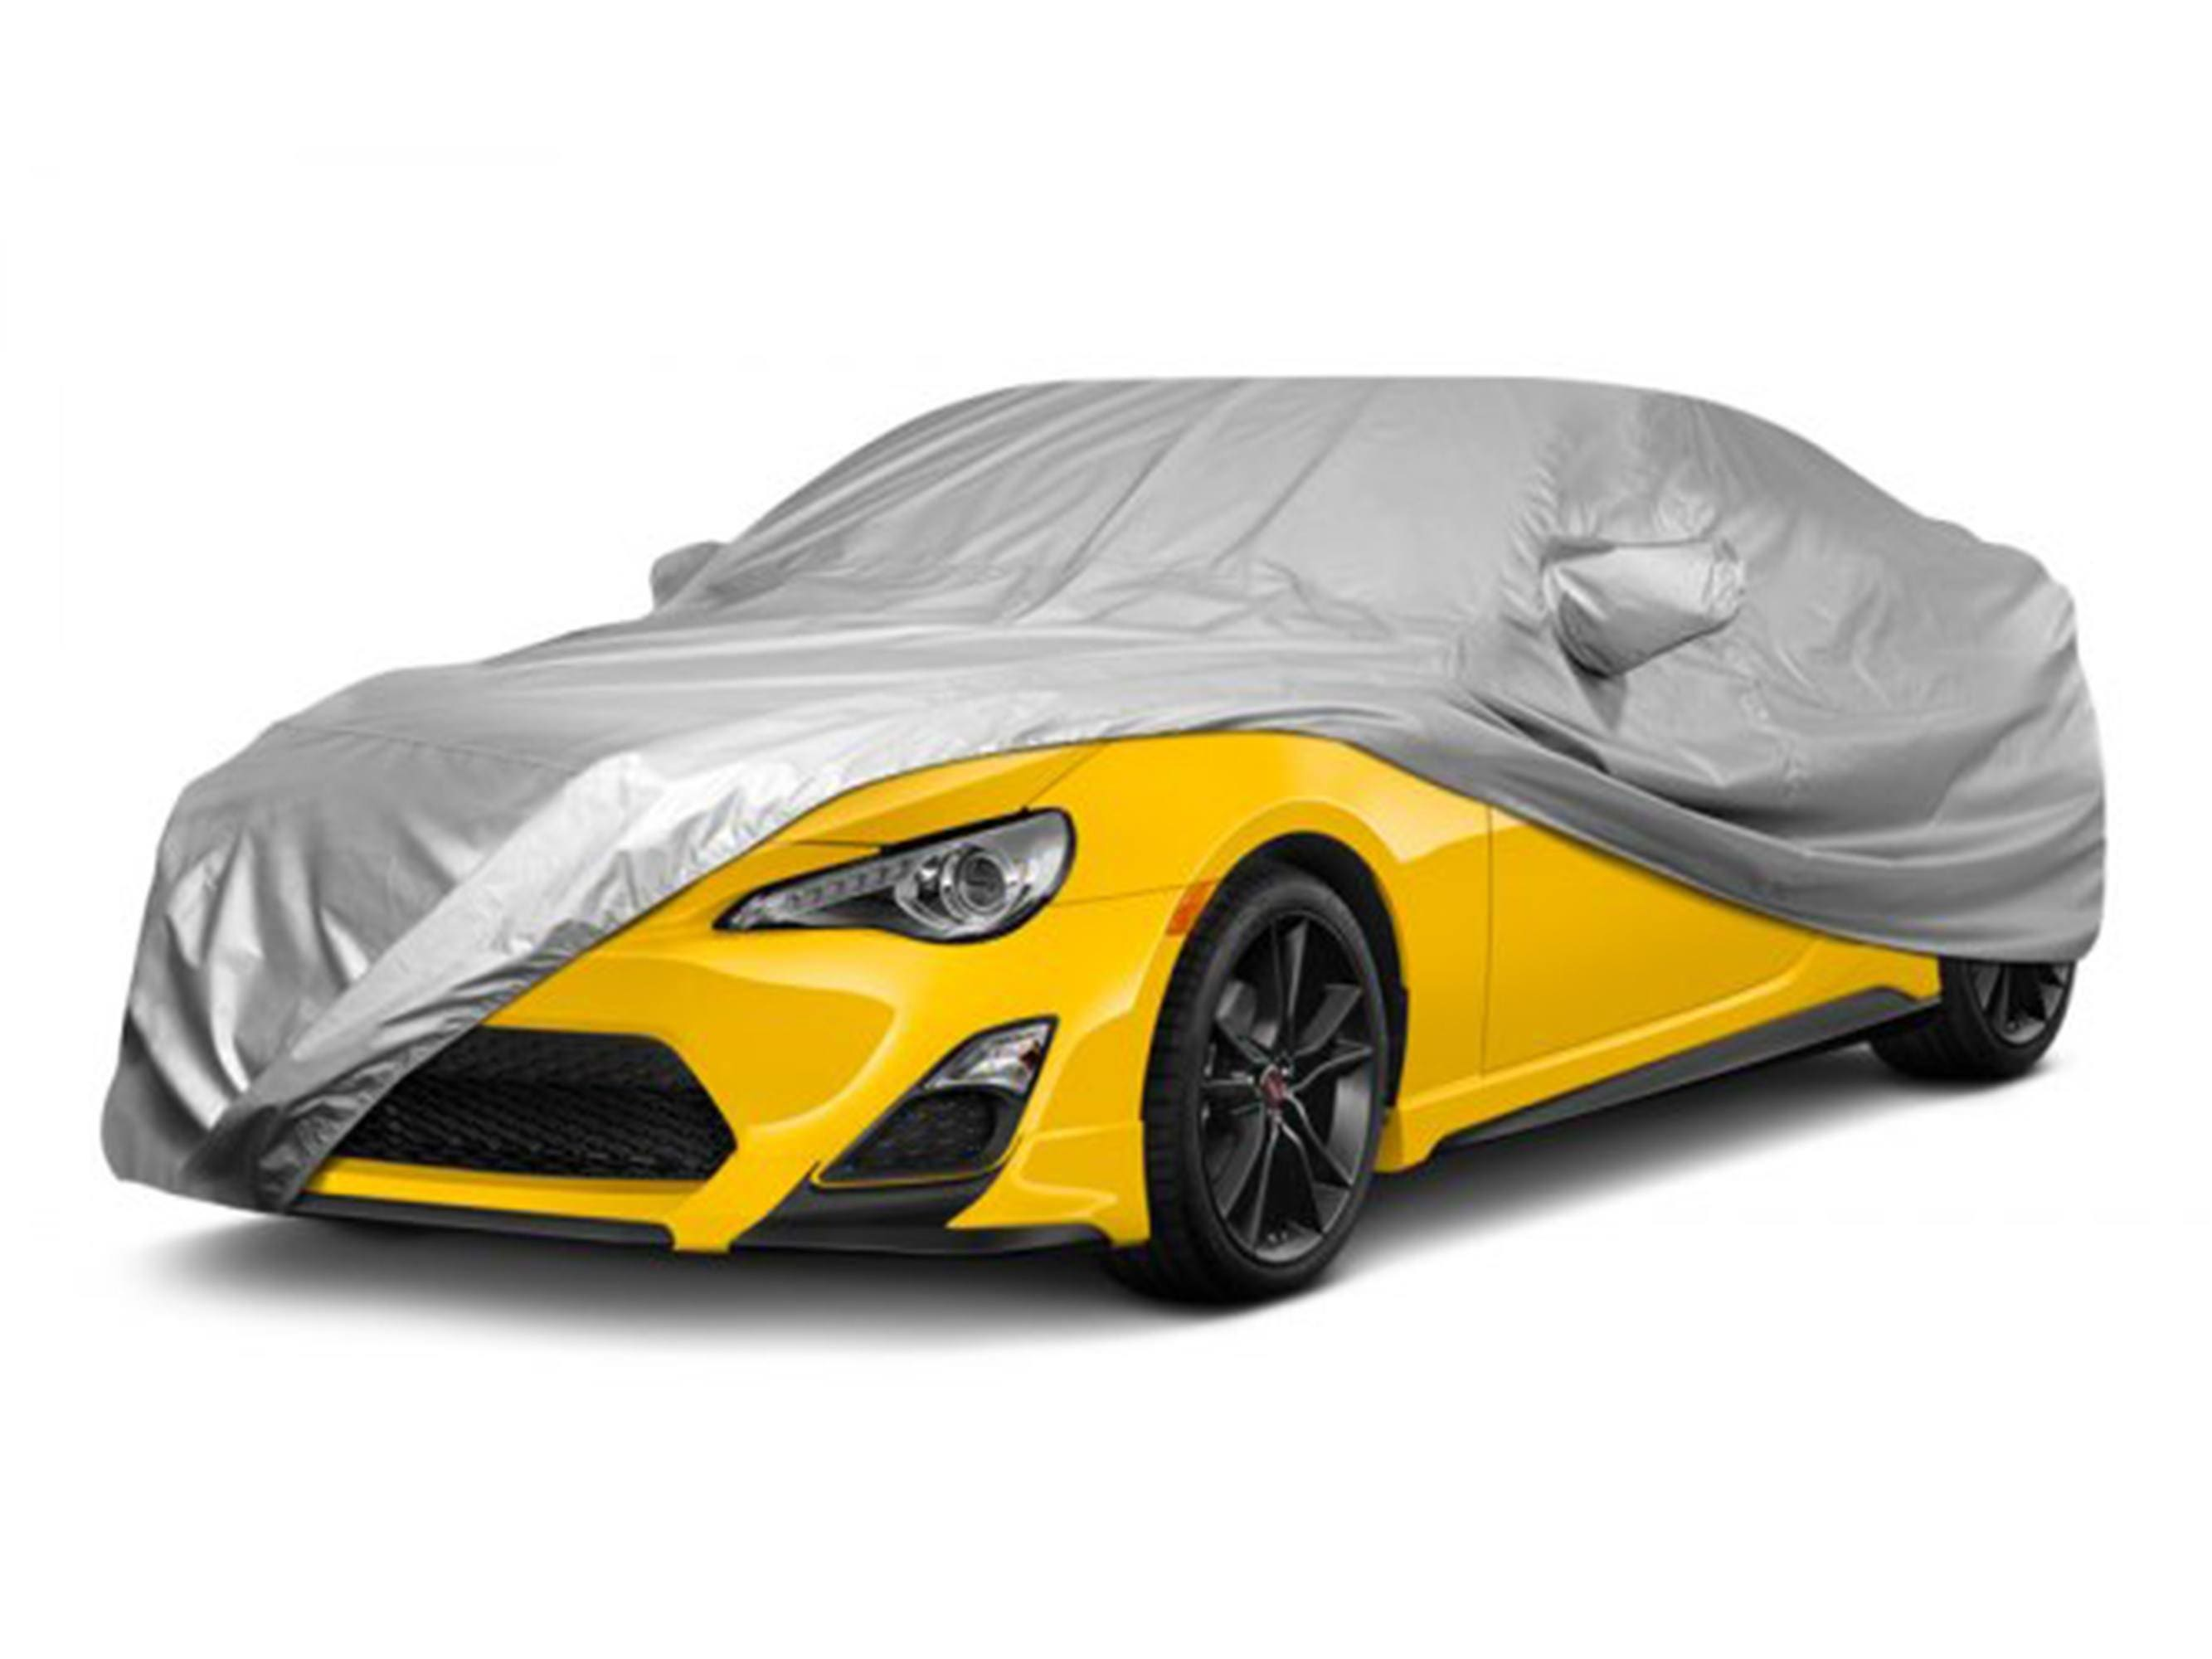 Covercraft Reflectect Custom Car Cover